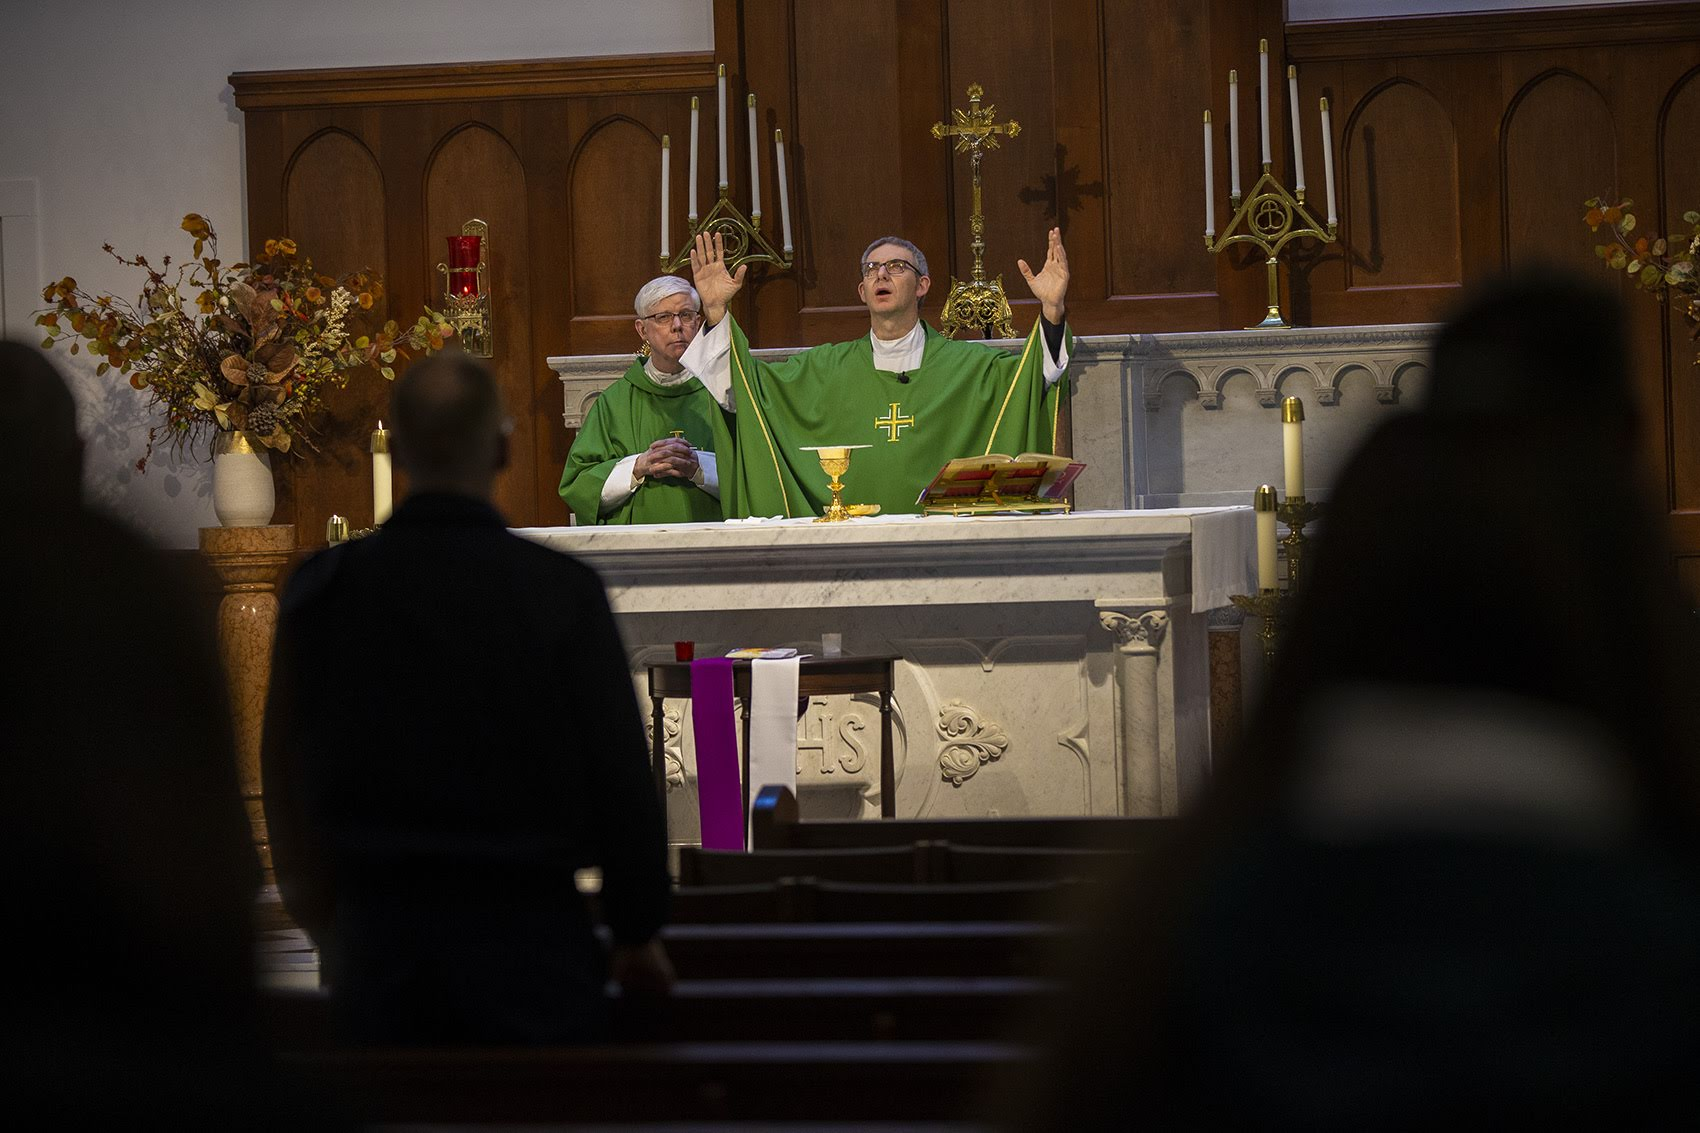 Father Paolo Cumin leads the noon Mass at Shrine of Our Lady of Good Voyage in the Seaport. (Jesse Costa/WBUR)